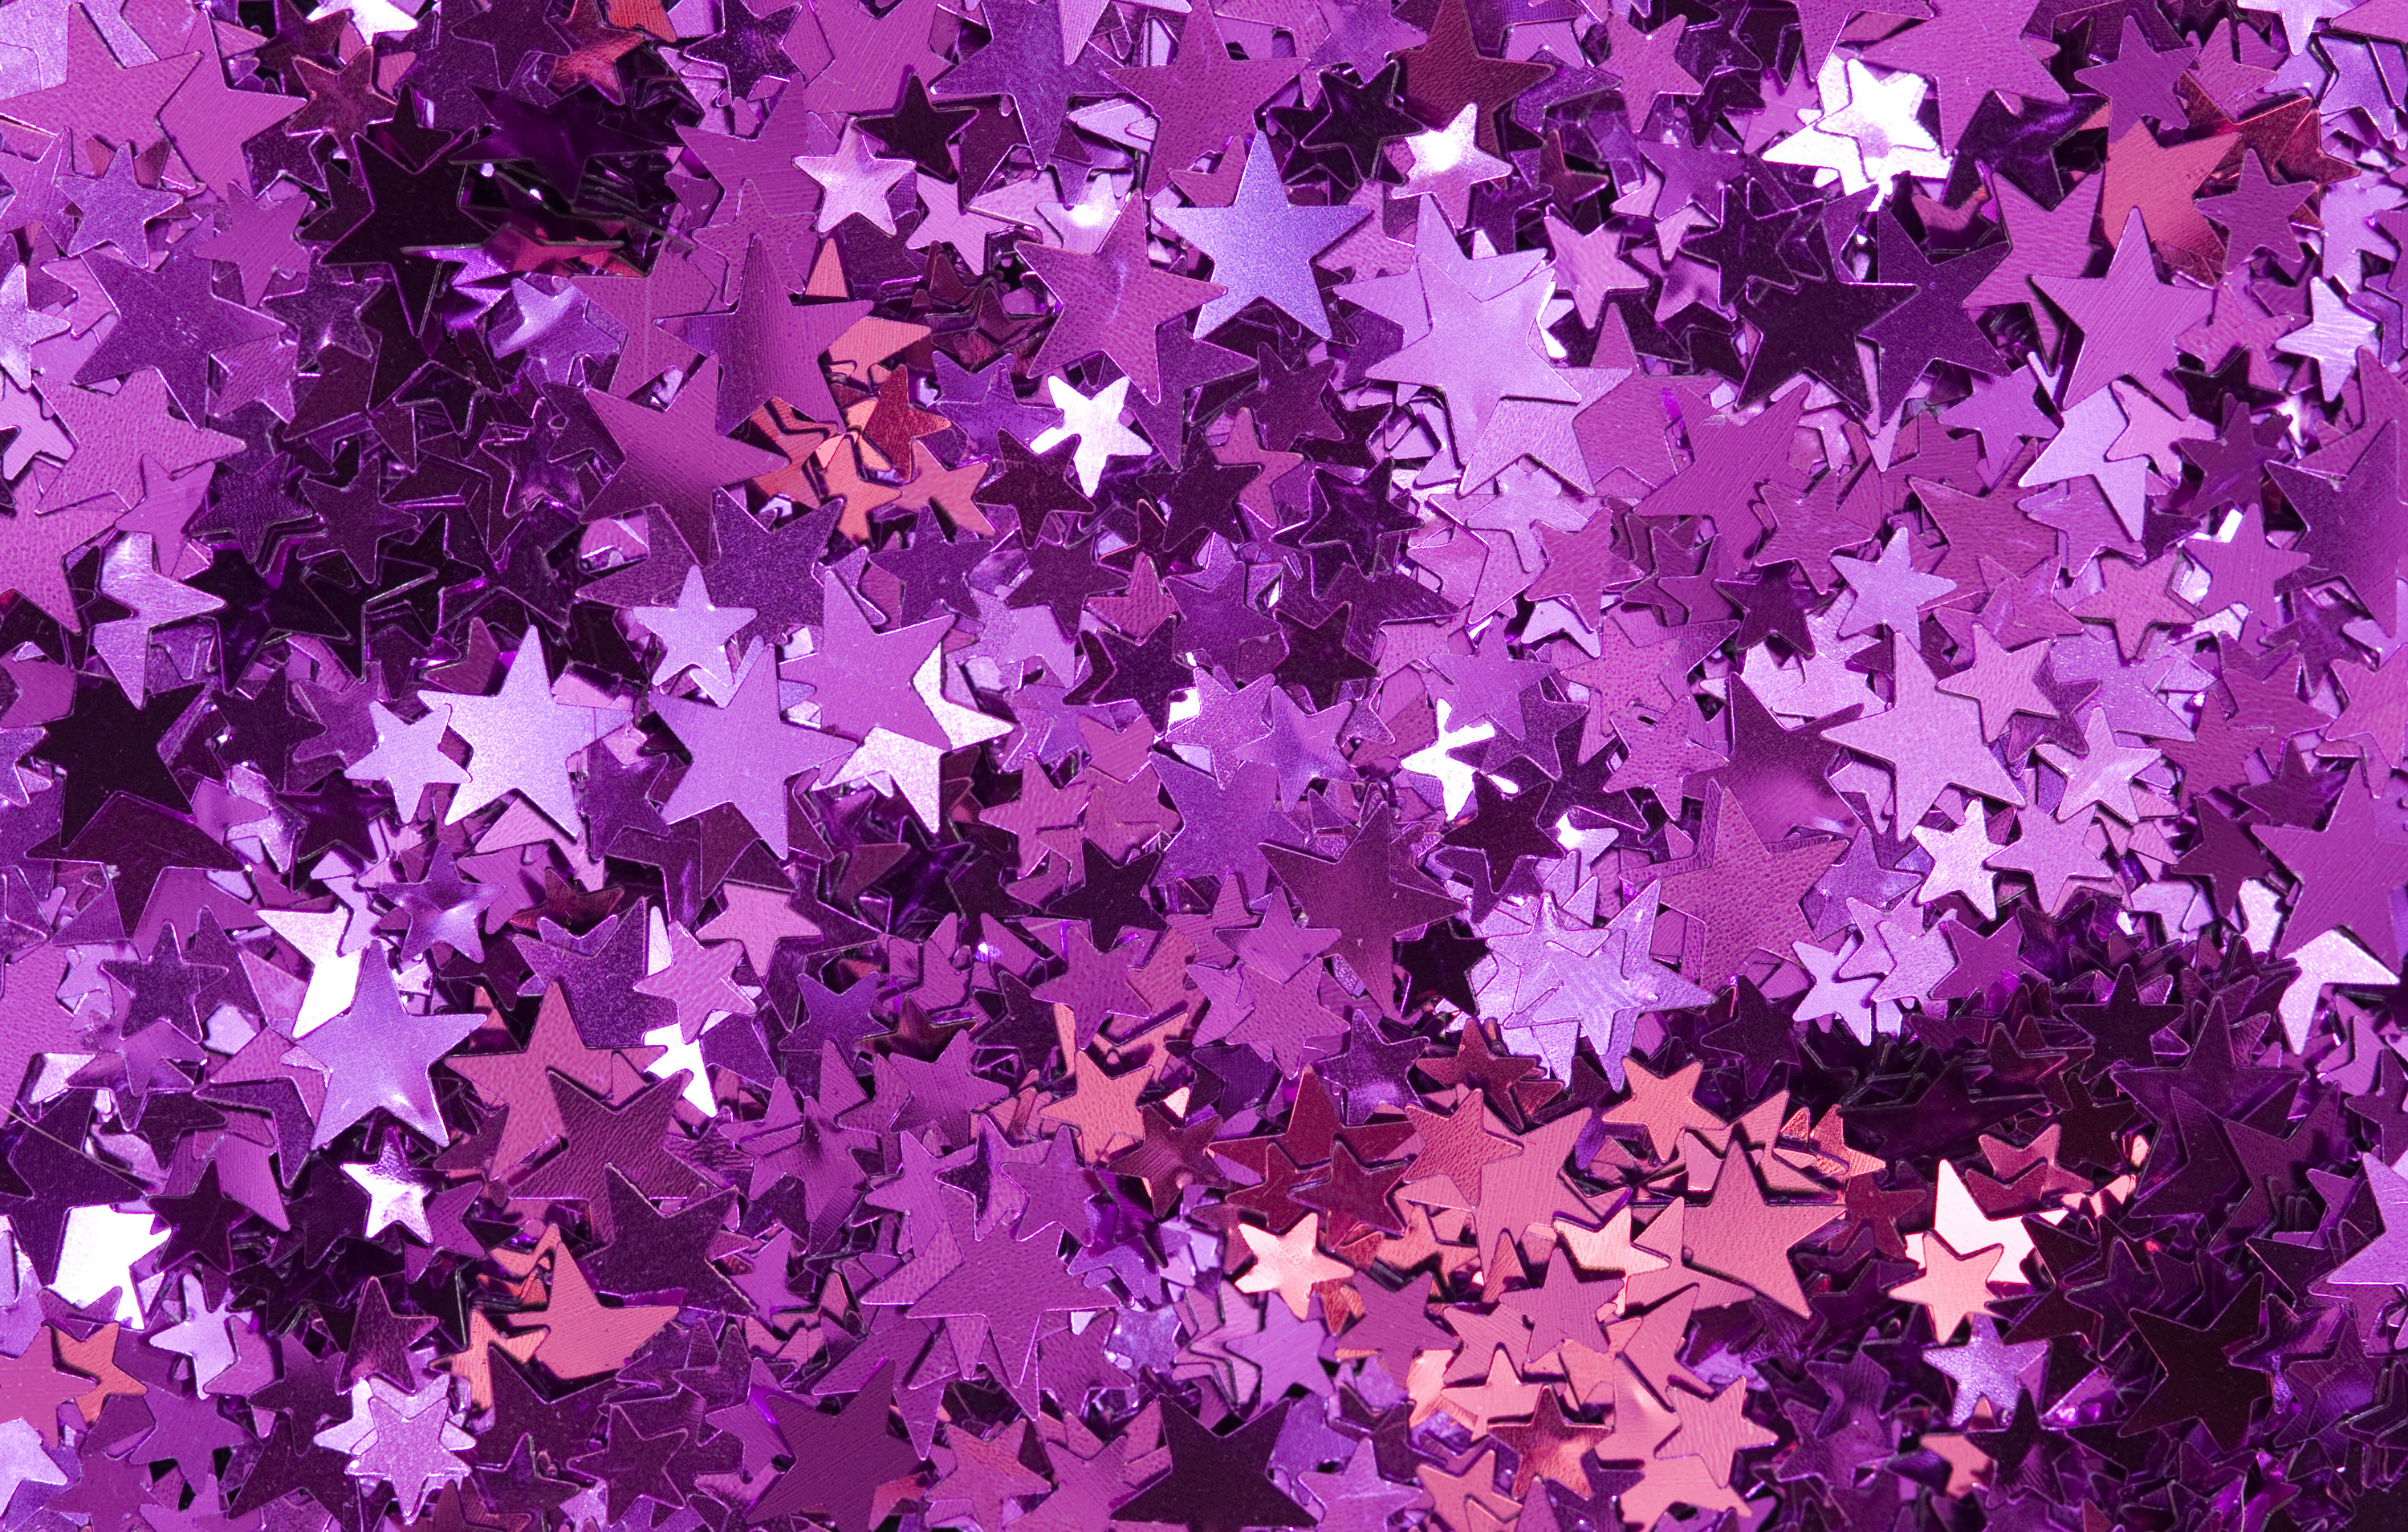 Free stock photo 3623 metallic star background freeimageslive a colorful pink backdrop of metallic confetti star shapes altavistaventures Image collections